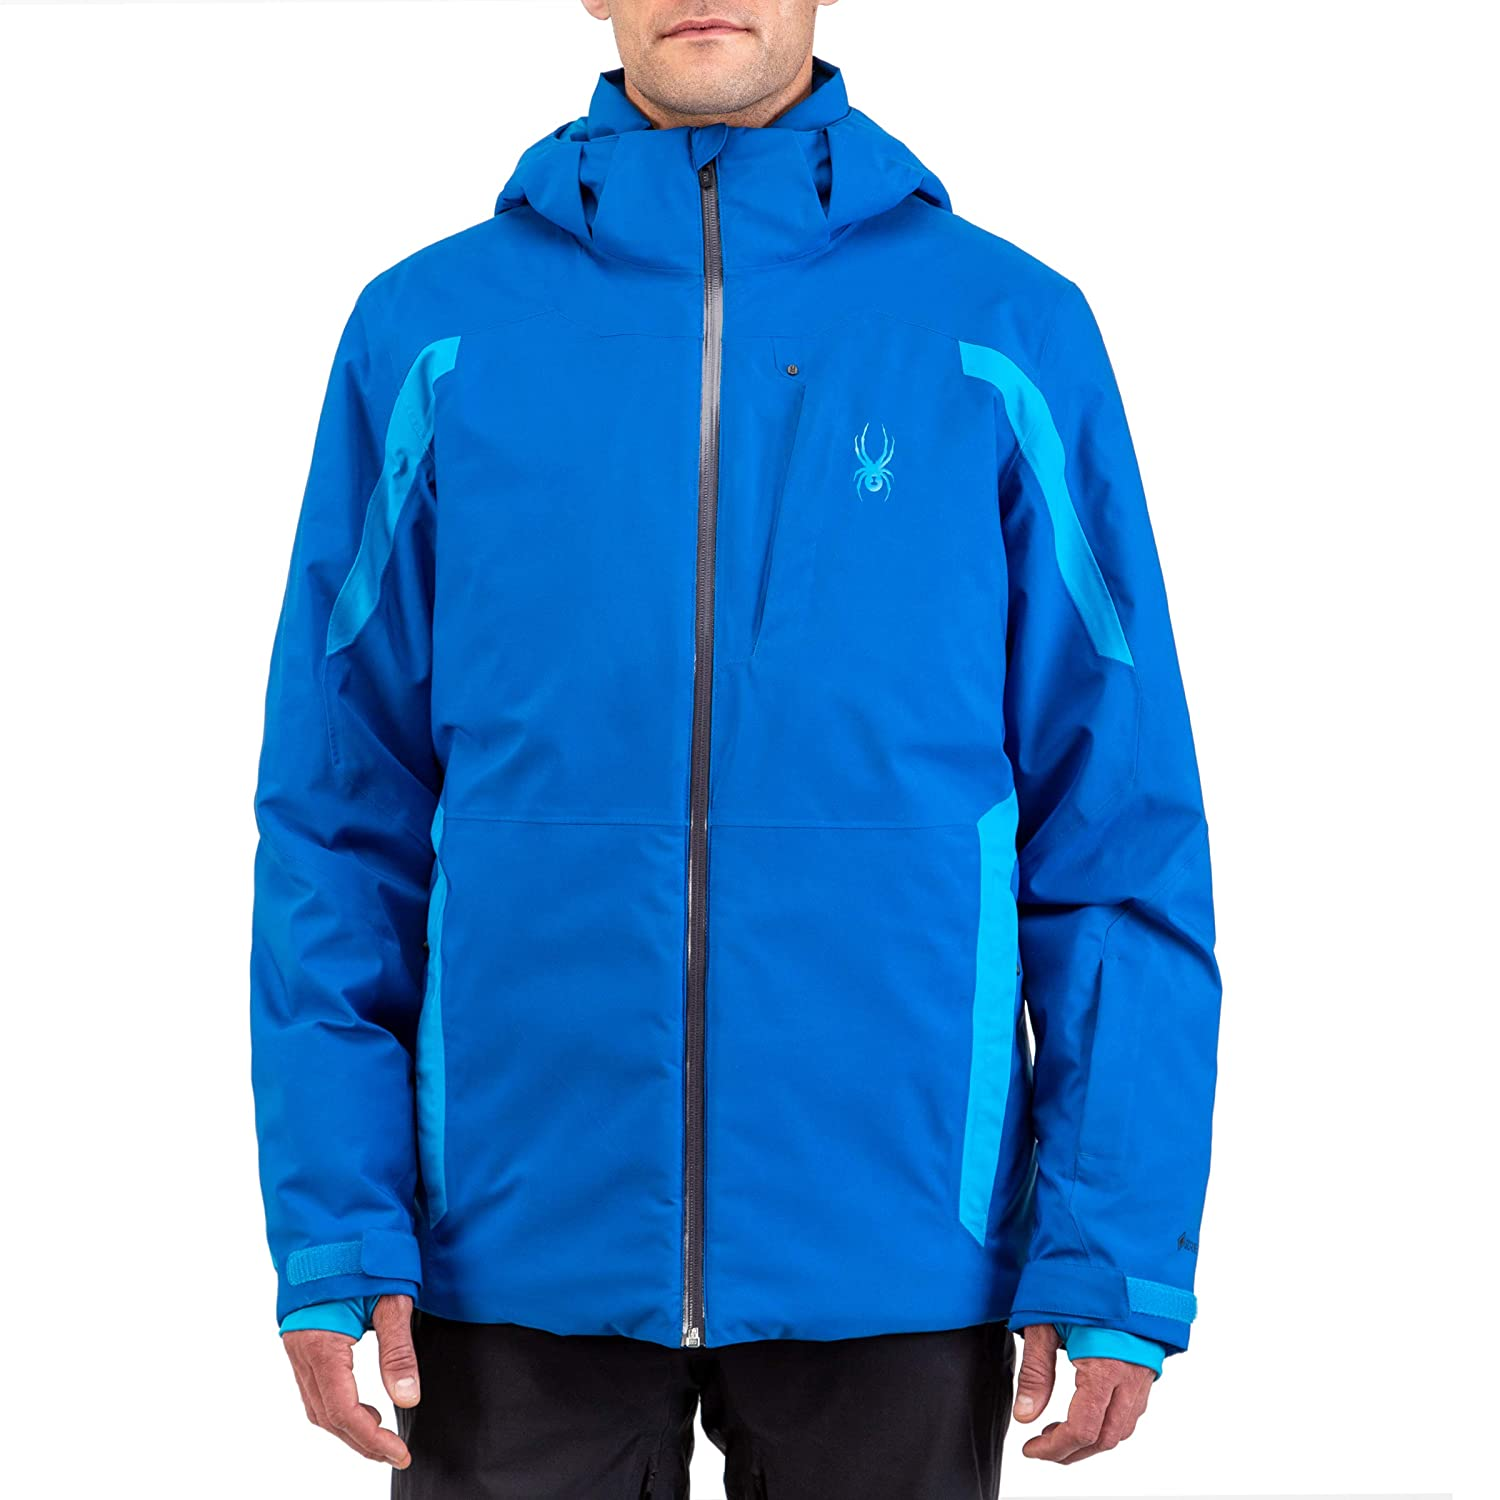 Spyder Men/'s Copper Gore-Tex Ski Jacket Male Full Zip Hooded Winter Coat